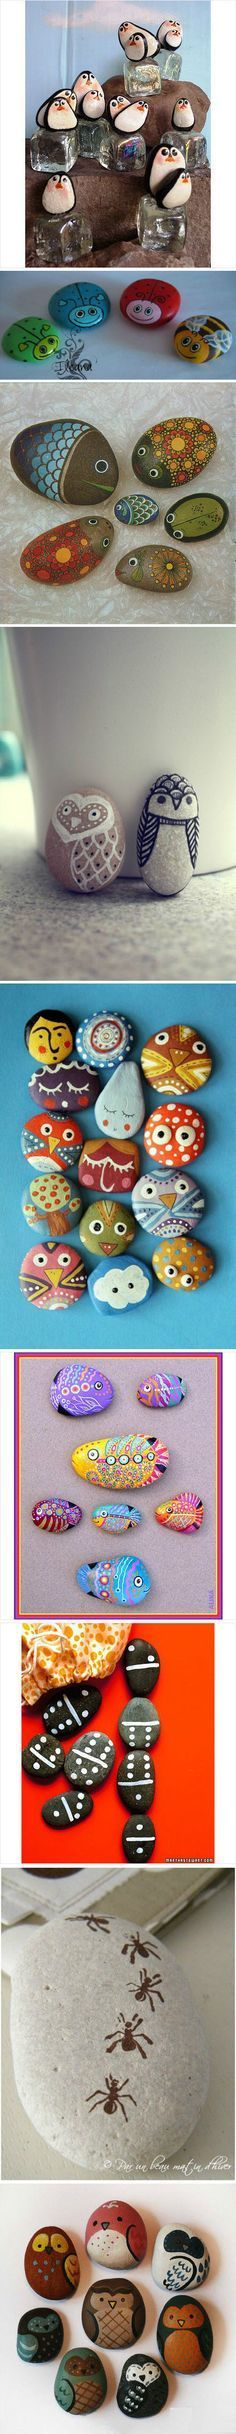 pebble art #2 – now you know what to do when collecting pebbles on the beach…. | best stuff